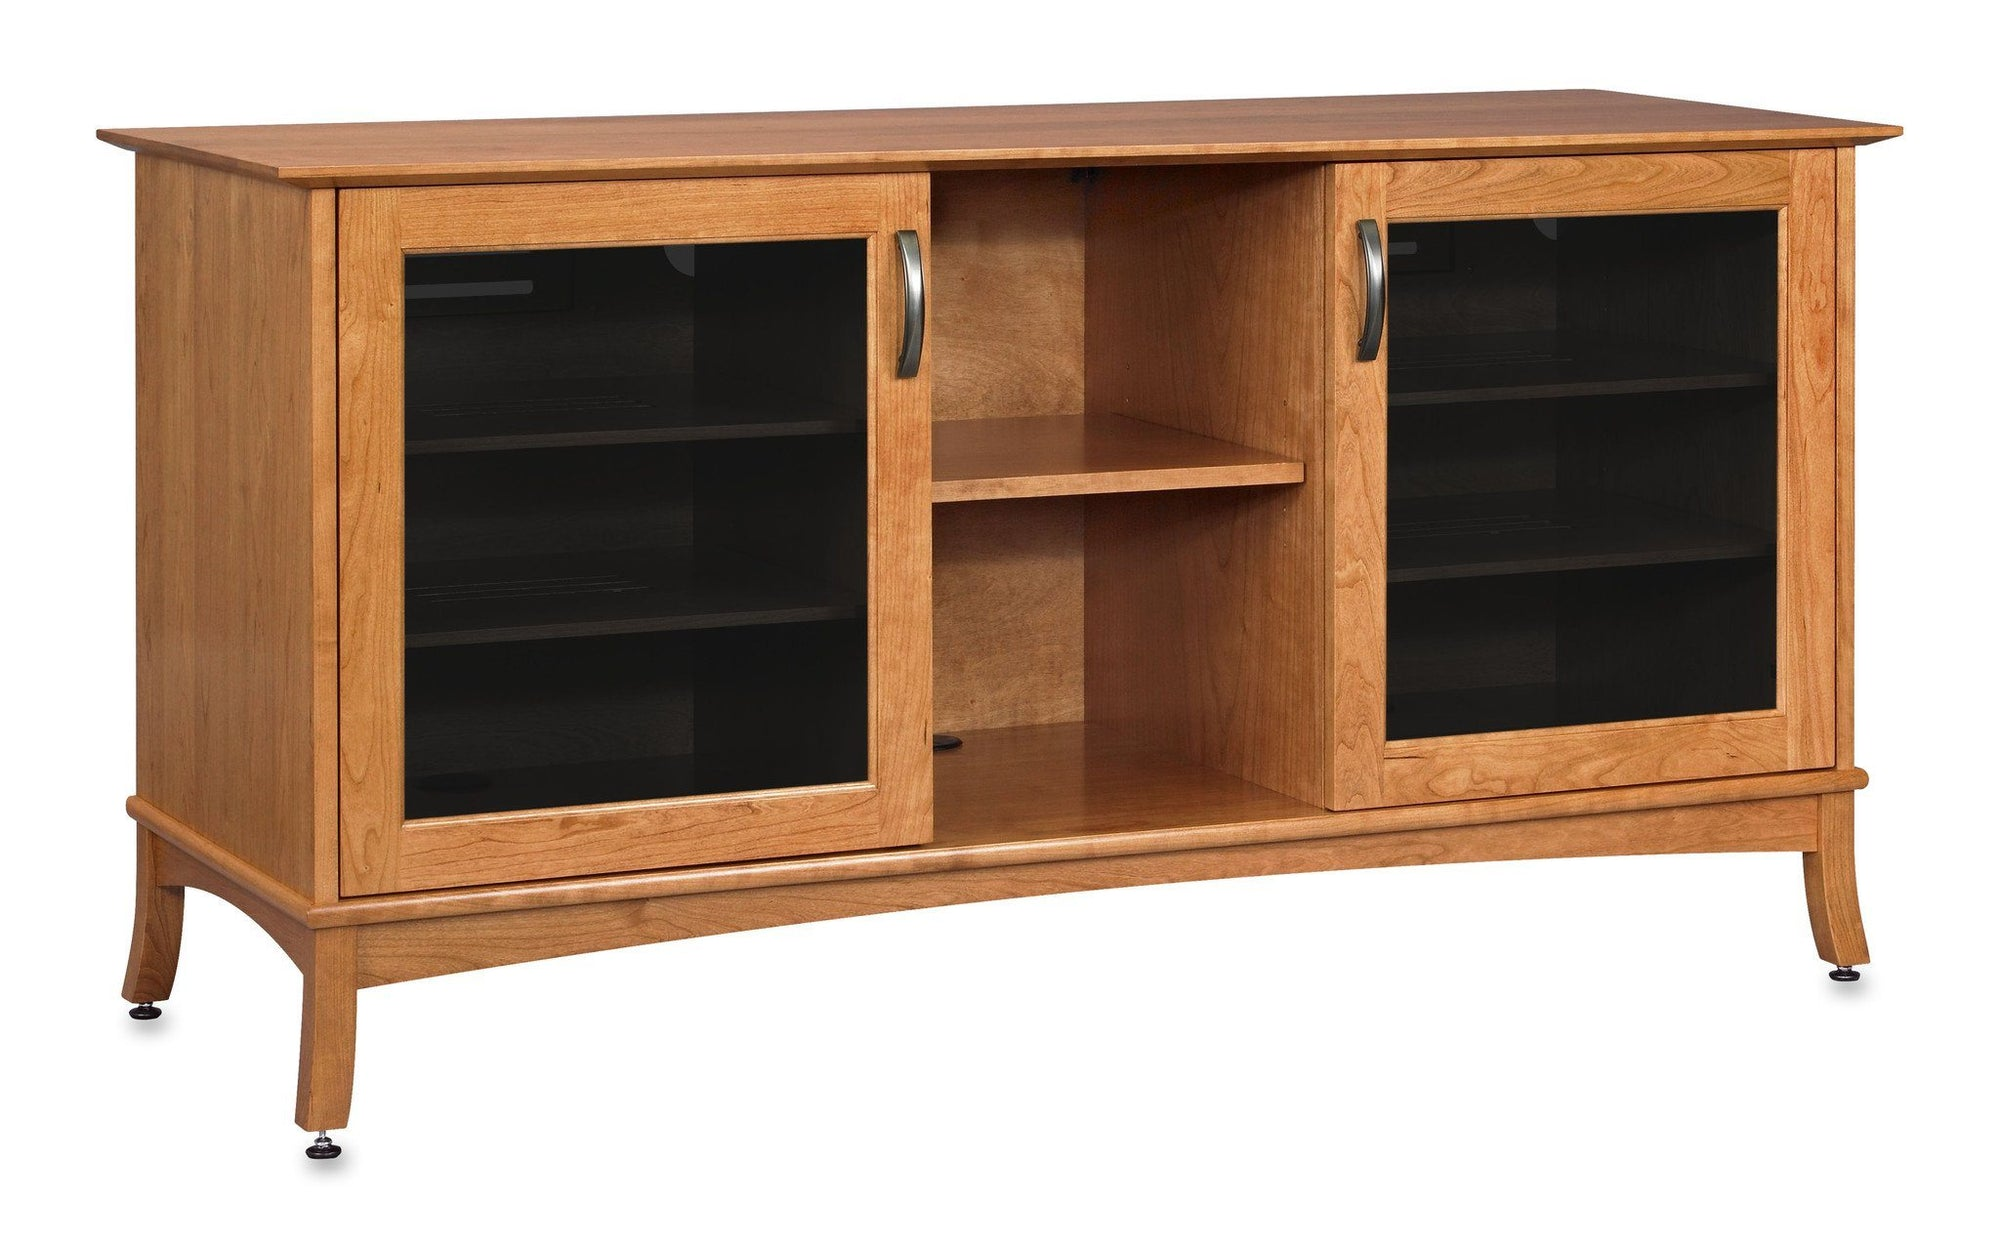 Solid Wood Media Console - Horizon Ex 60 Inch Sunrise On